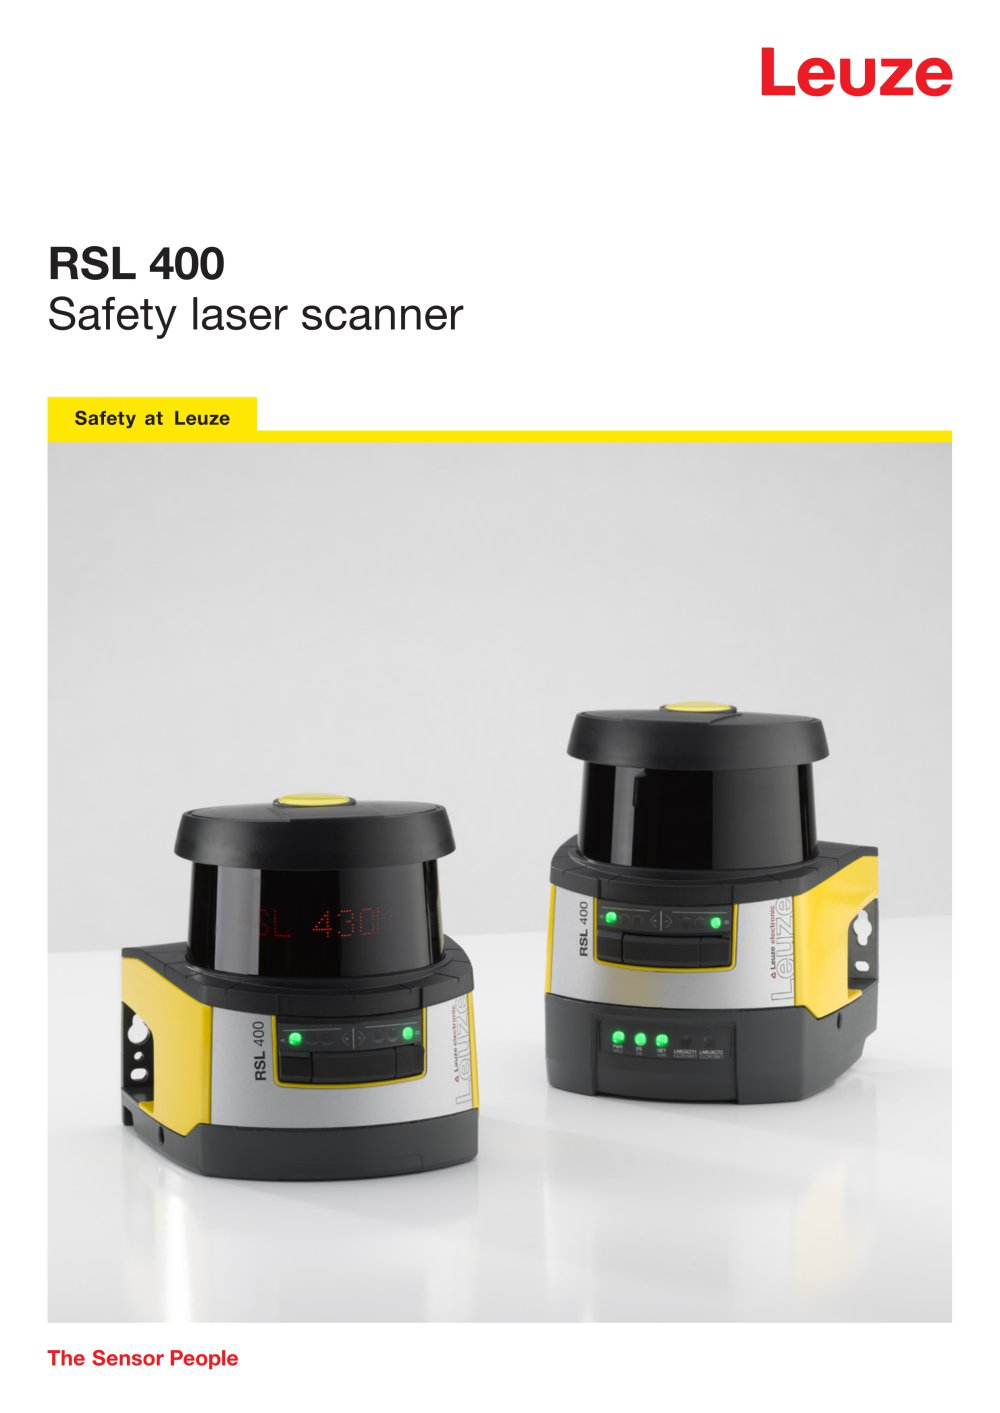 rsl 400 safety laser scanner two autonomous protective functions 619155_1b rsl 400 safety laser scanner with two autonomous protective  at reclaimingppi.co